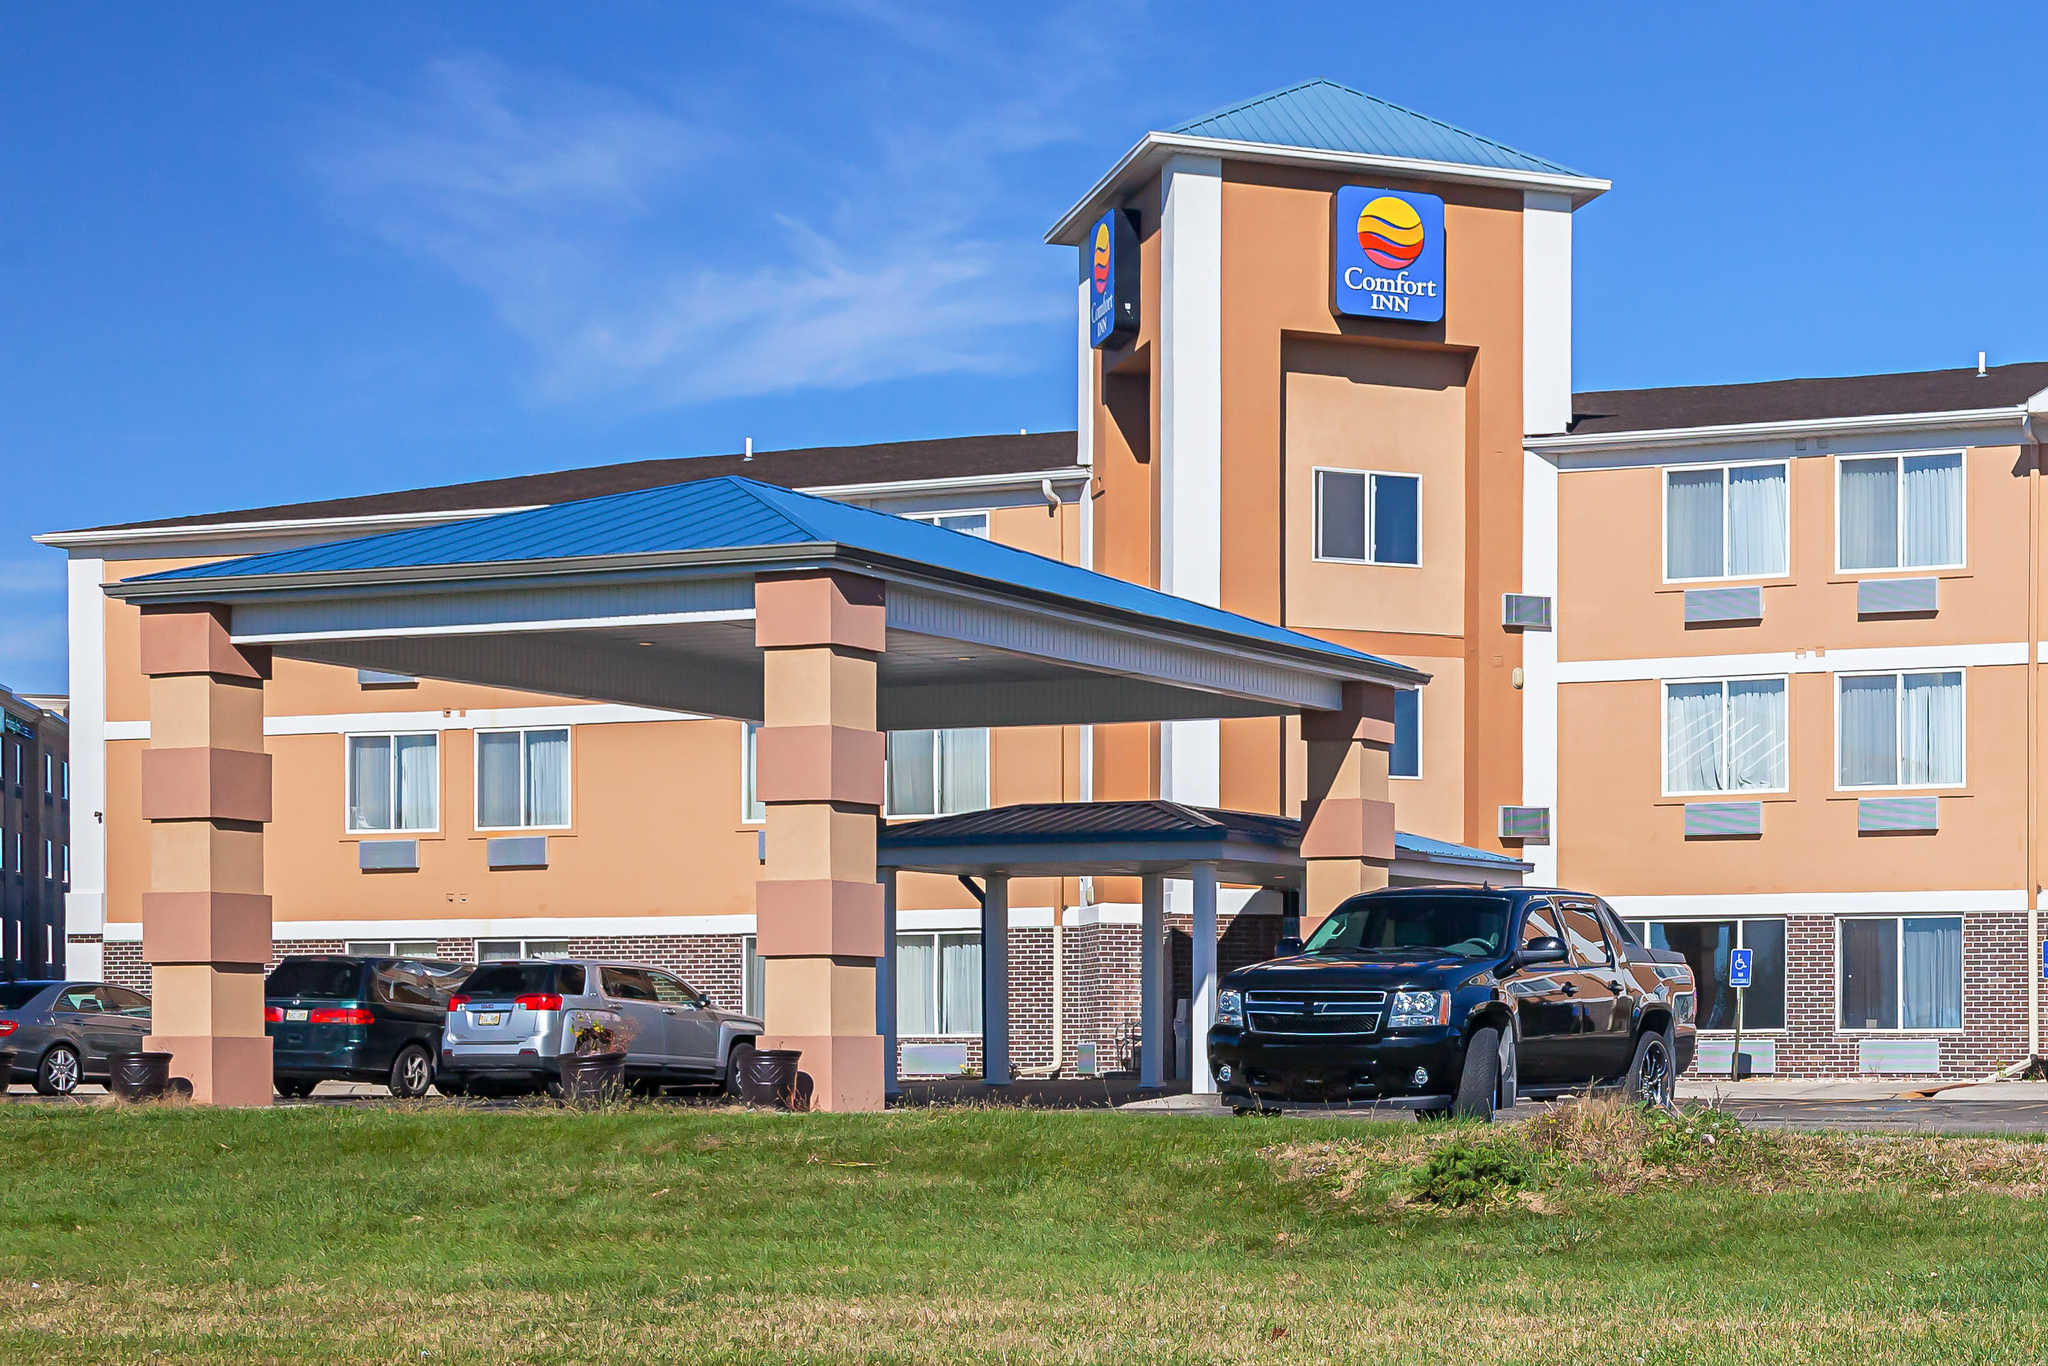 Comfort Inn In Lincoln Ne 68521 Chamberofcommerce Com